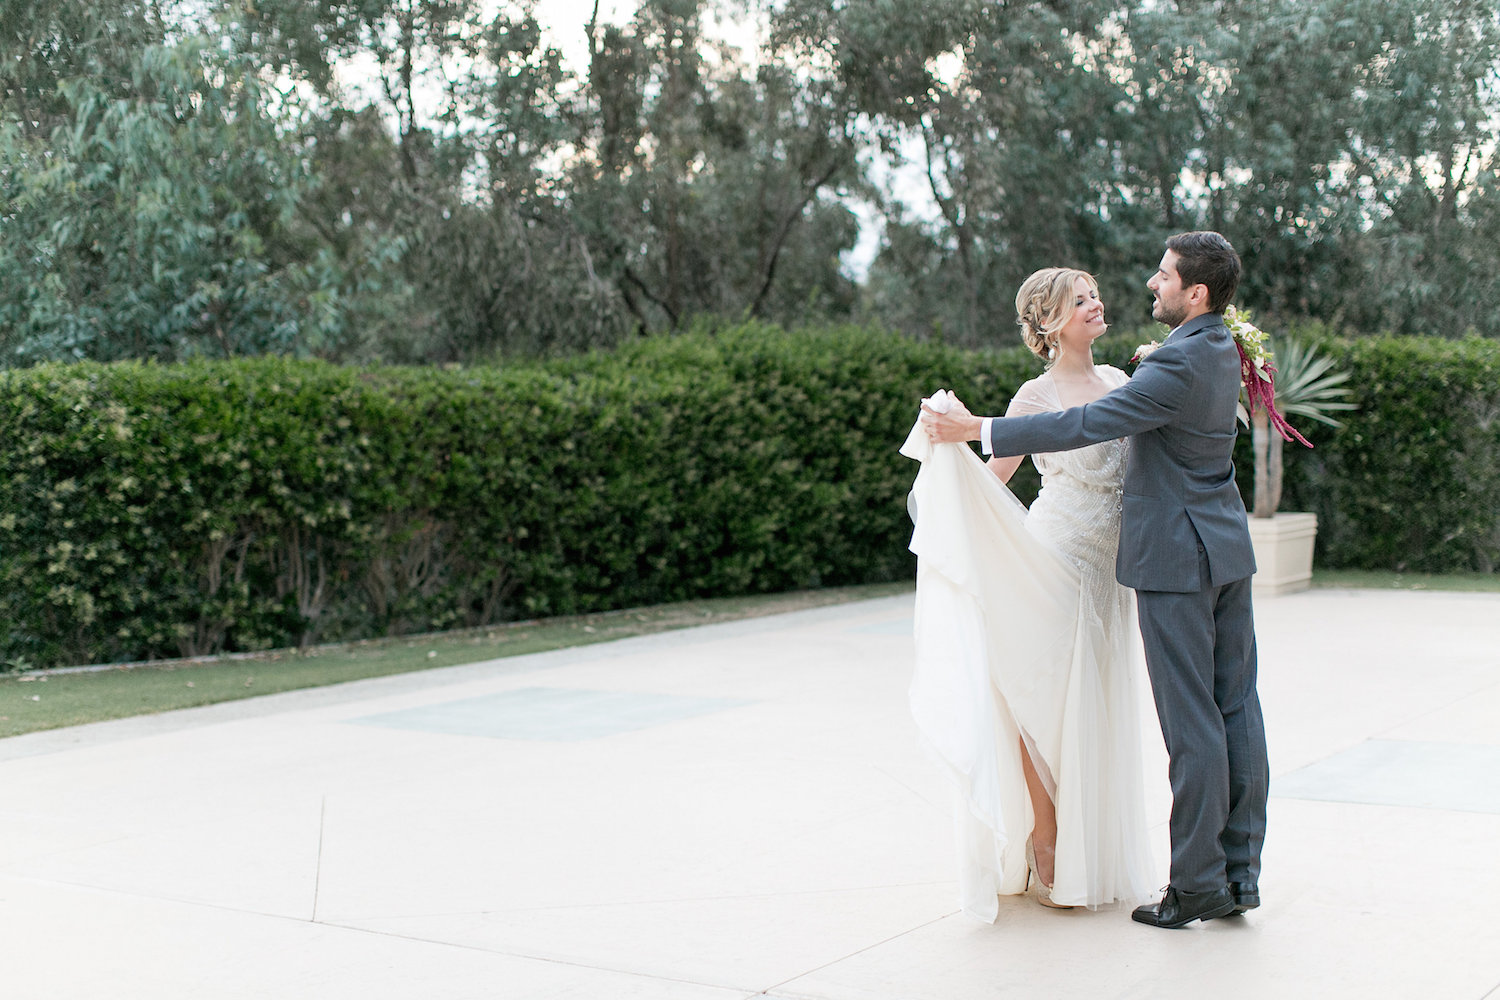 """Wedding first dance.          96               Normal   0           false   false   false     EN-US   X-NONE   X-NONE                                                                                                                                                                                                                                                                                                                                                                                                                                                                                                                                                                                                                                                                                                                                                                                                                                                                                  /* Style Definitions */ table.MsoNormalTable {mso-style-name:""""Table Normal""""; mso-tstyle-rowband-size:0; mso-tstyle-colband-size:0; mso-style-noshow:yes; mso-style-priority:99; mso-style-parent:""""""""; mso-padding-alt:0in 5.4pt 0in 5.4pt; mso-para-margin:0in; mso-para-margin-bottom:.0001pt; mso-pagination:widow-orphan; font-size:12.0pt; font-family:Calibri; mso-ascii-font-family:Calibri; mso-ascii-theme-font:minor-latin; mso-hansi-font-family:Calibri; mso-hansi-theme-font:minor-latin;}      Marsala & blush wedding inspiration by San Diego florist, Compass Floral."""